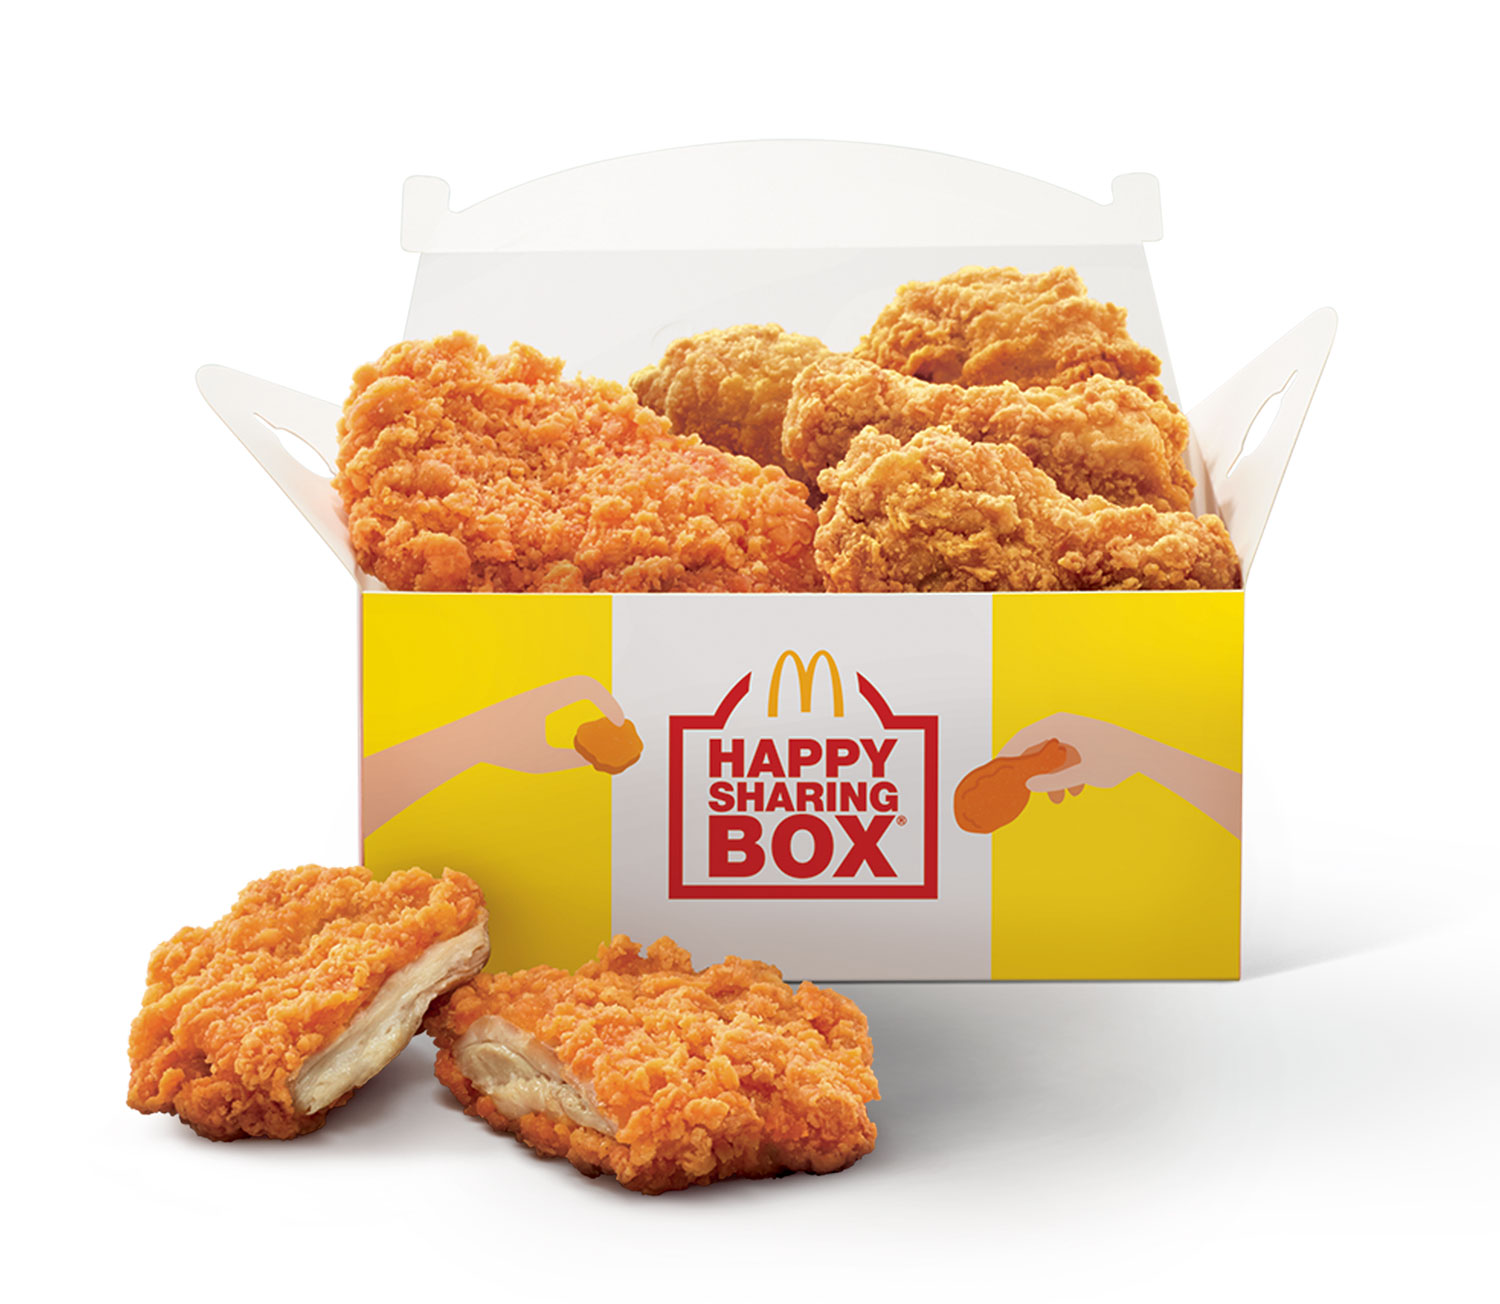 Happy Sharing Box C, available via McDelivery and GrabFood at $6.90 (U.P. $9.70)